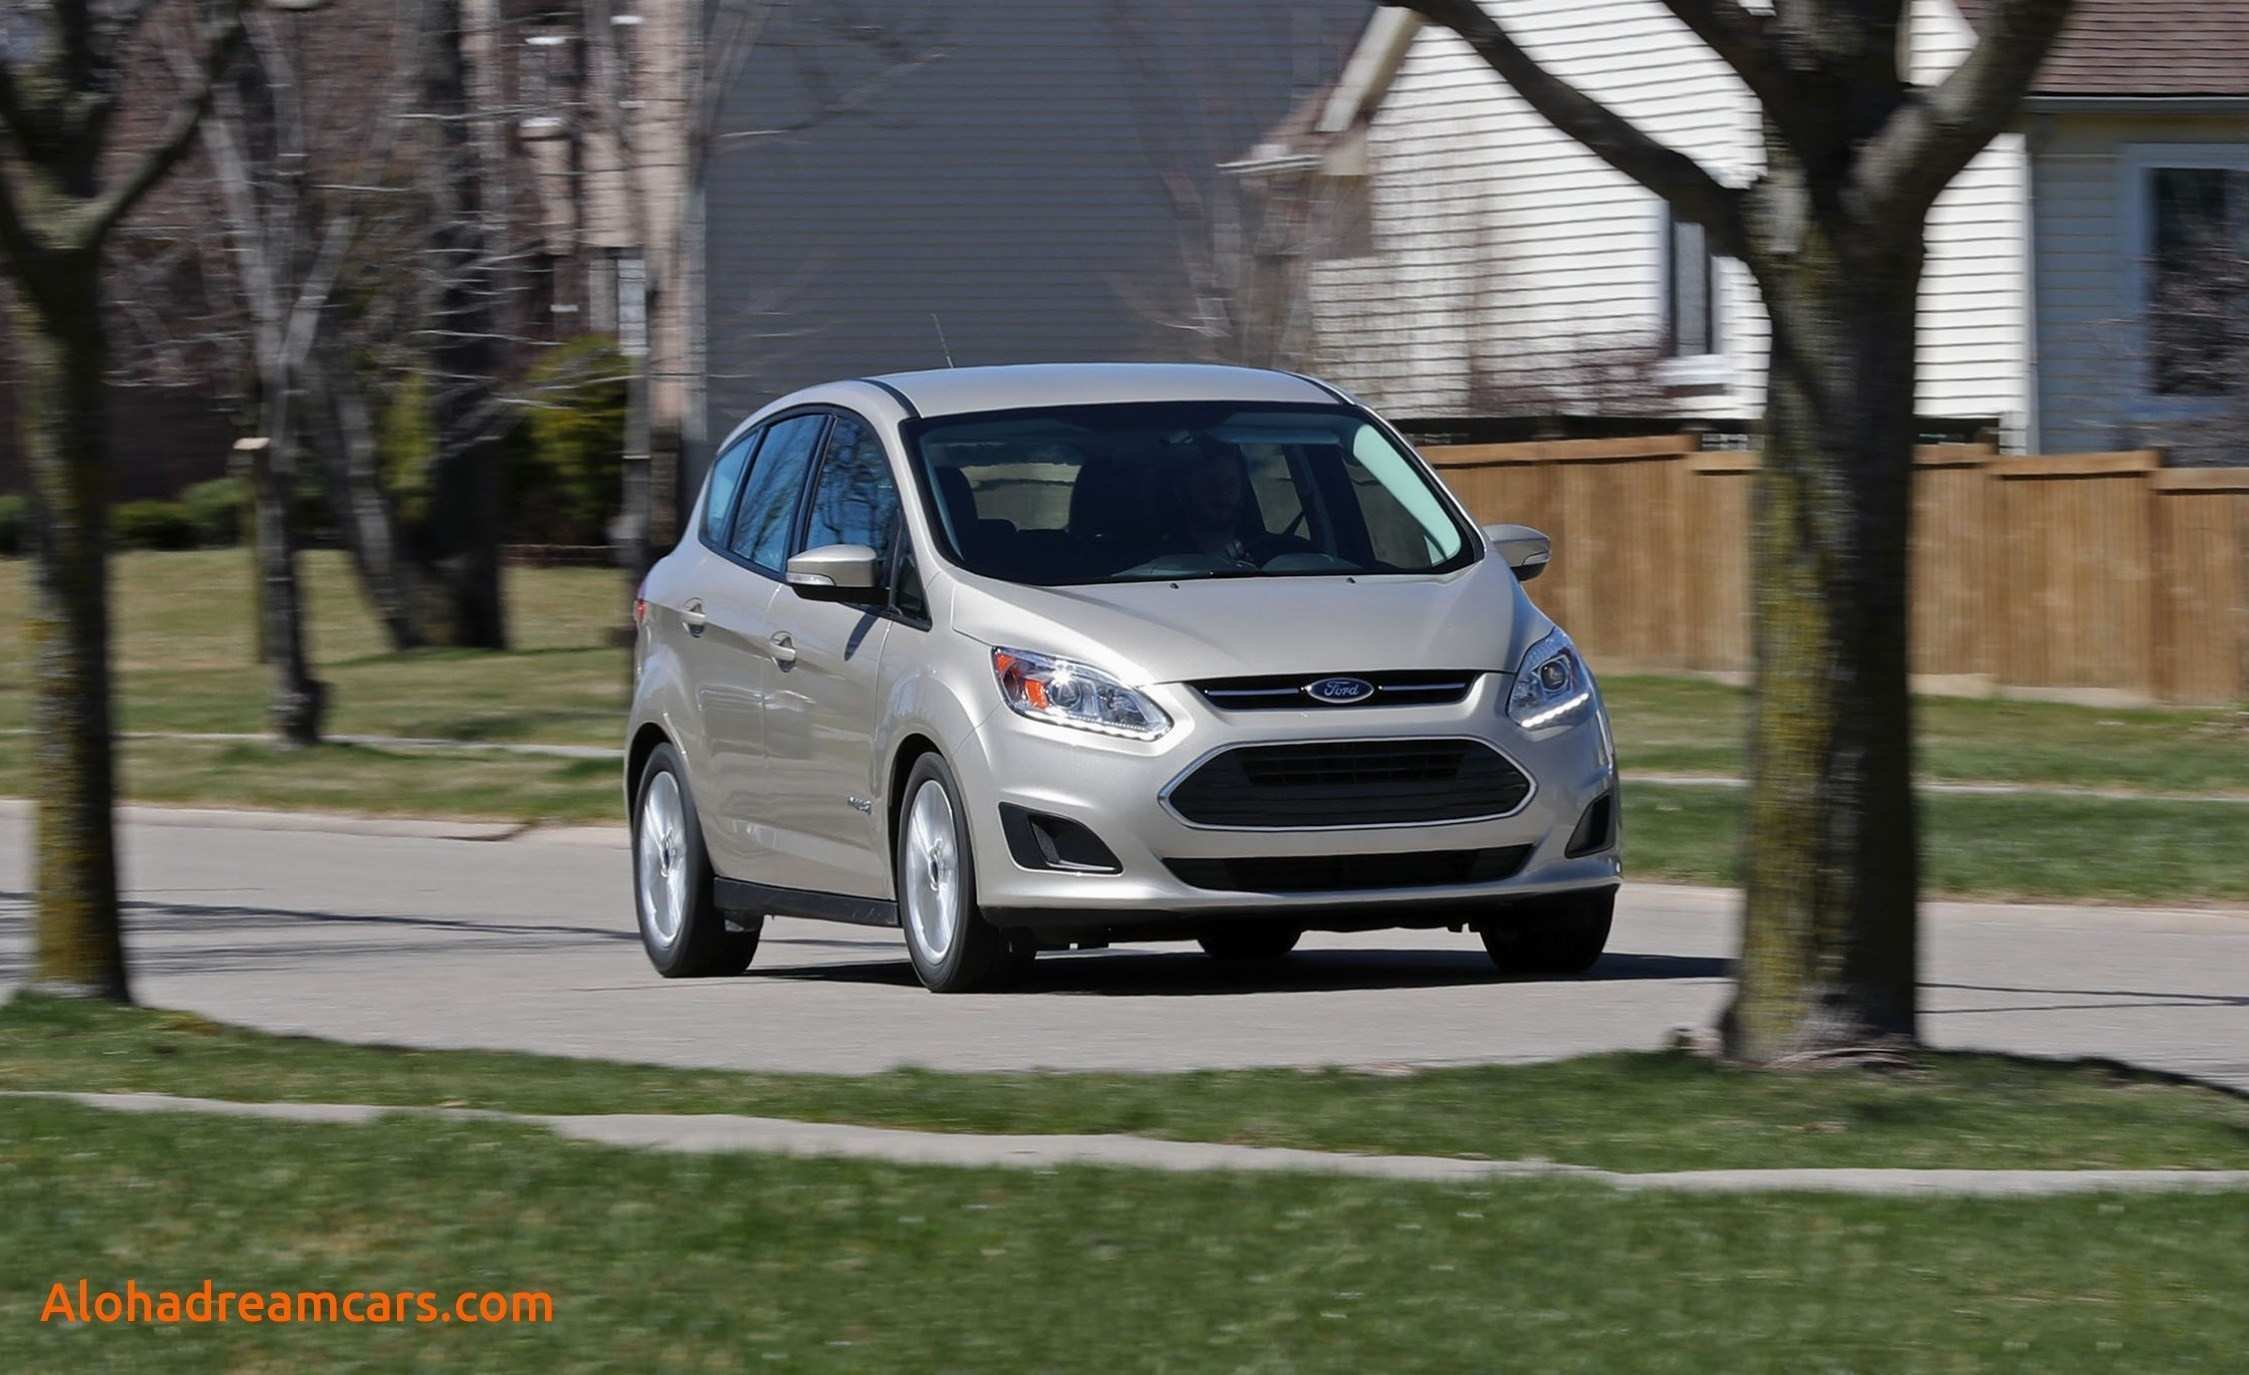 92 All New 2019 Ford C Max Spesification